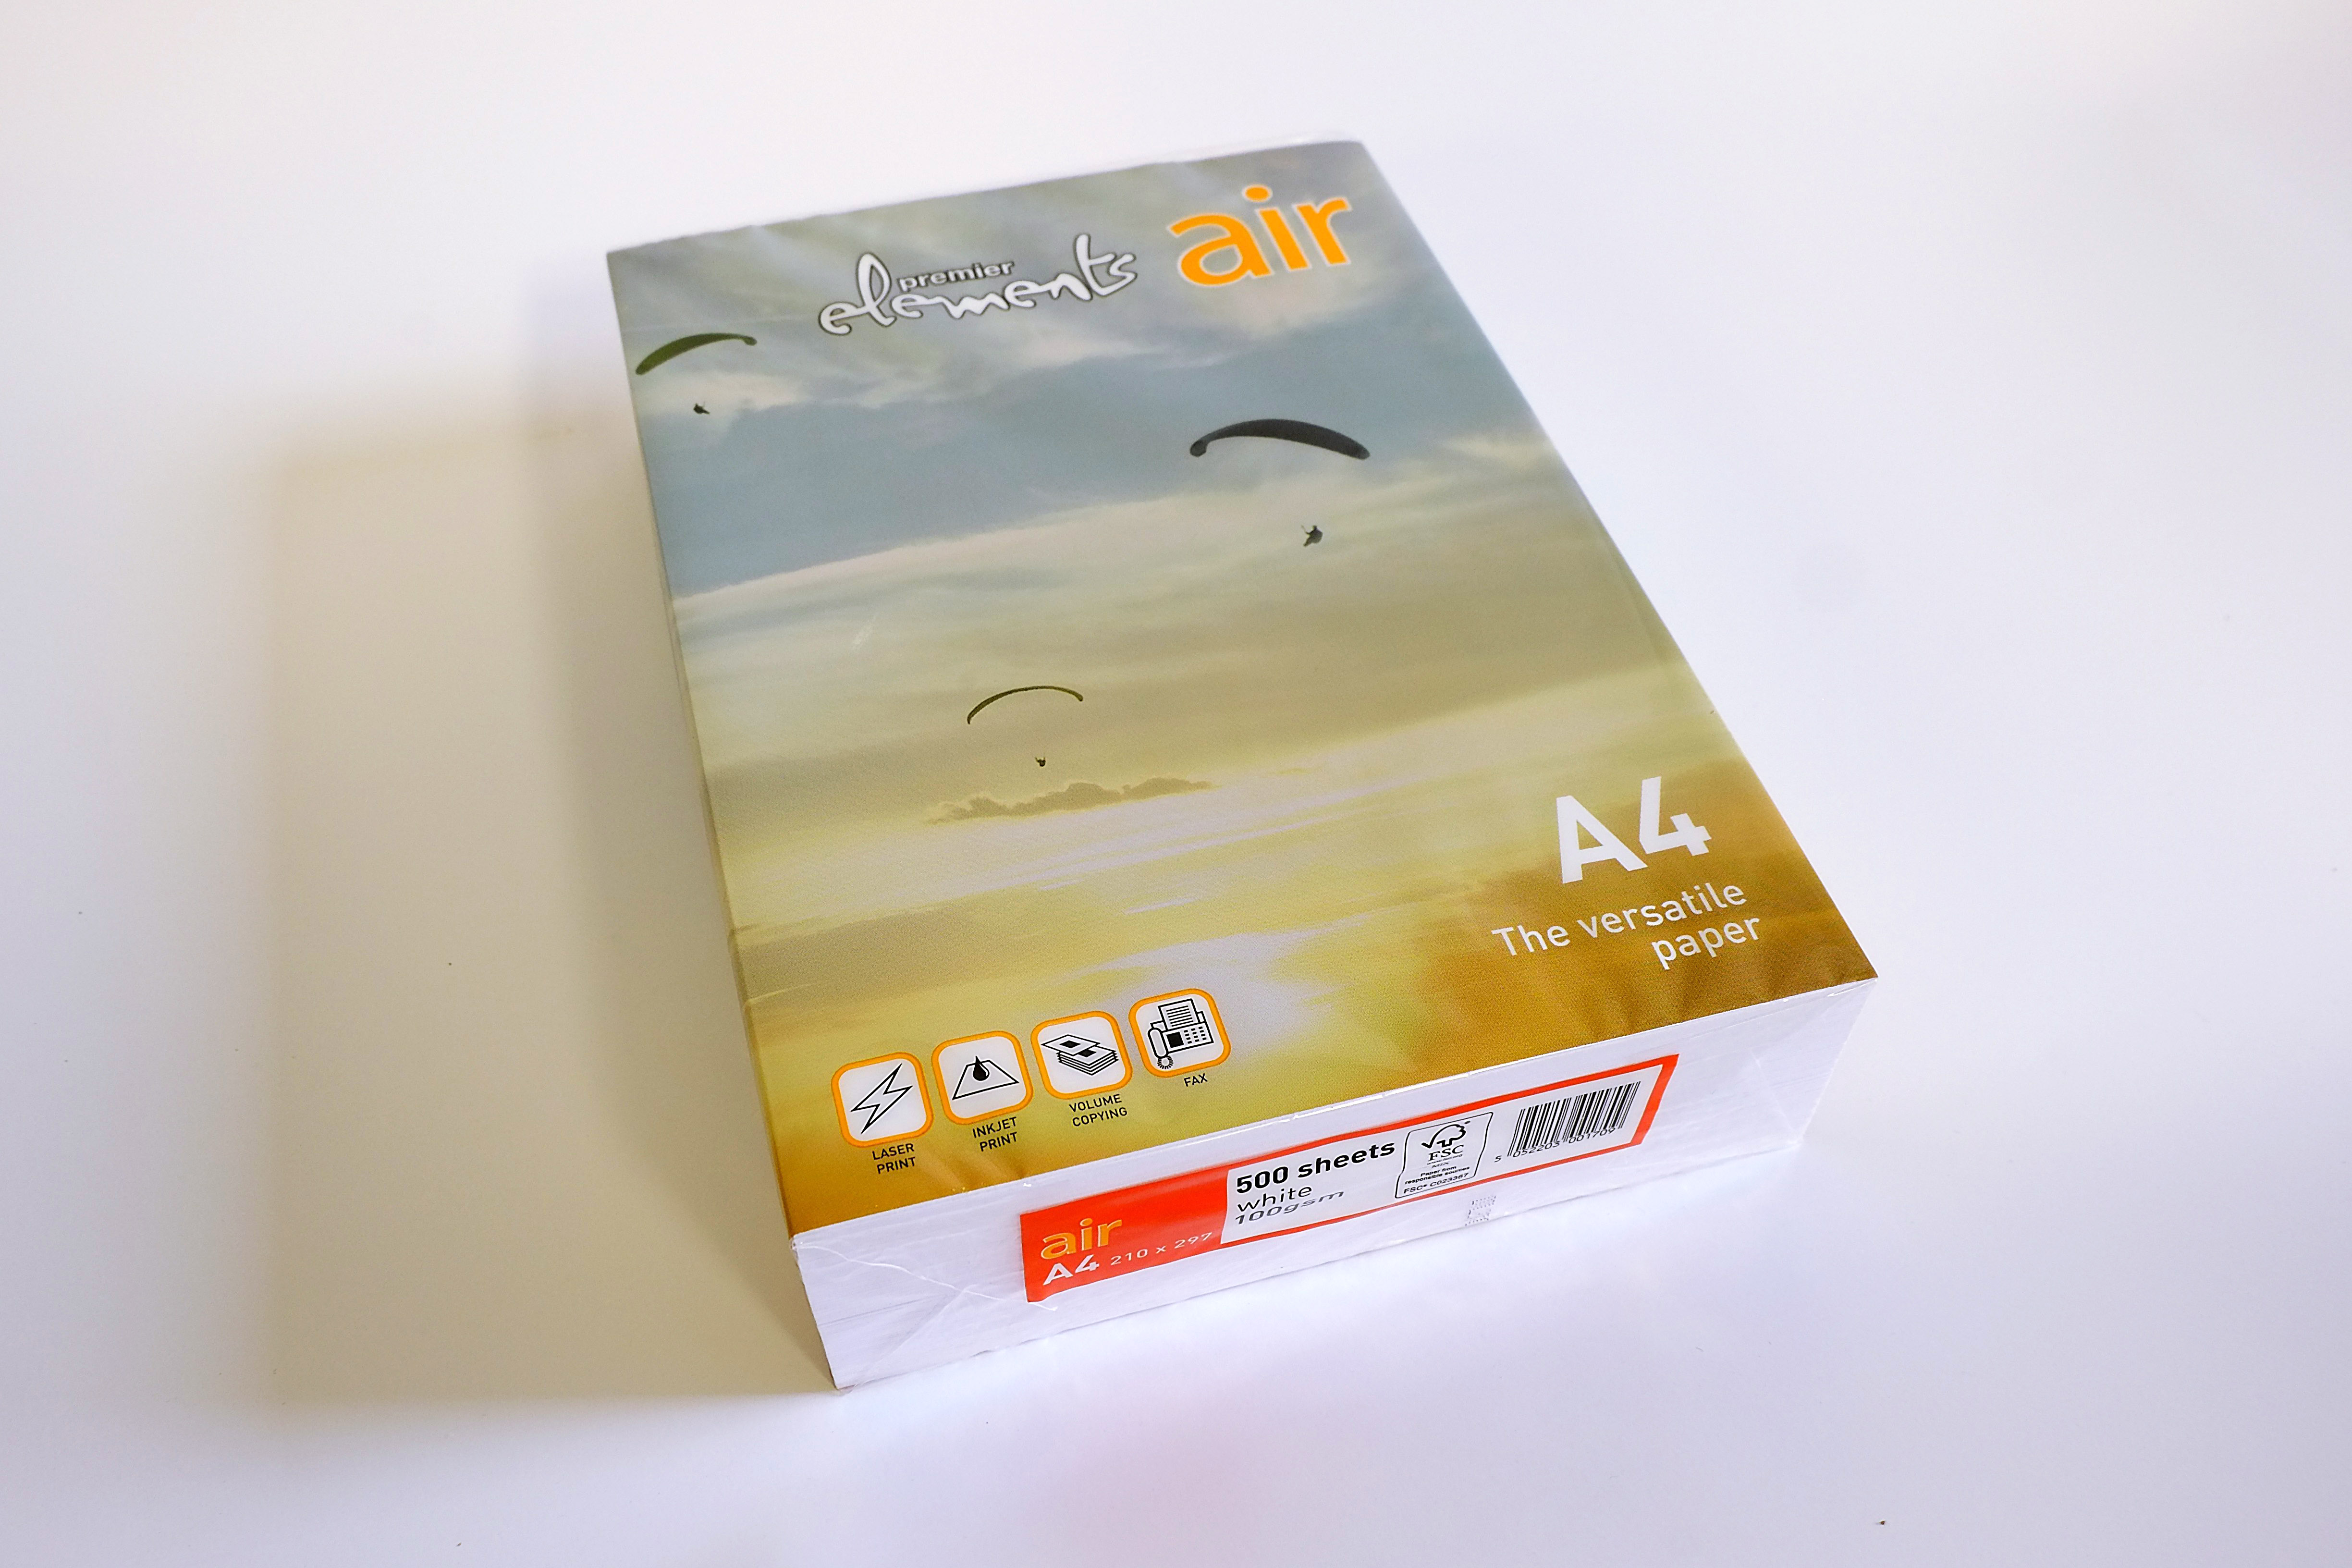 Image Business A4 100gsm Paper